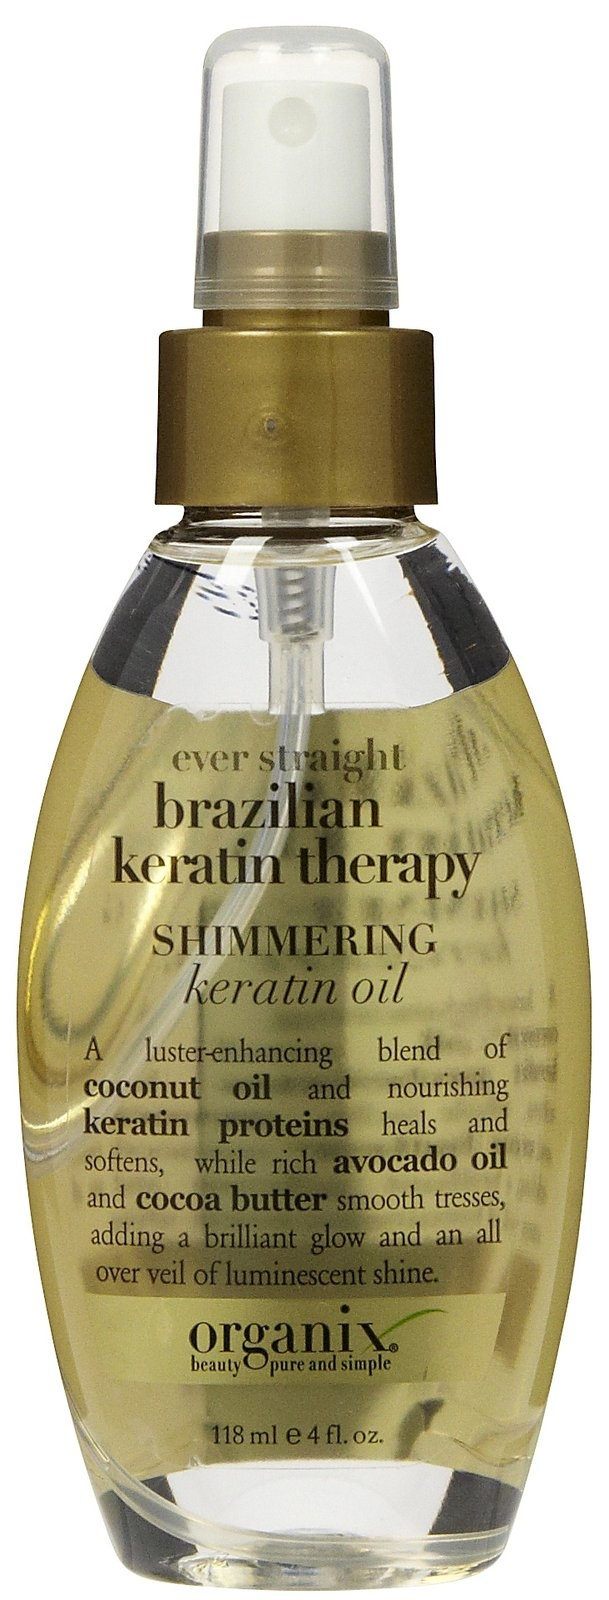 Organix Brazilian Keratin Therapy Ever Straight Shimmering Keratin Oil